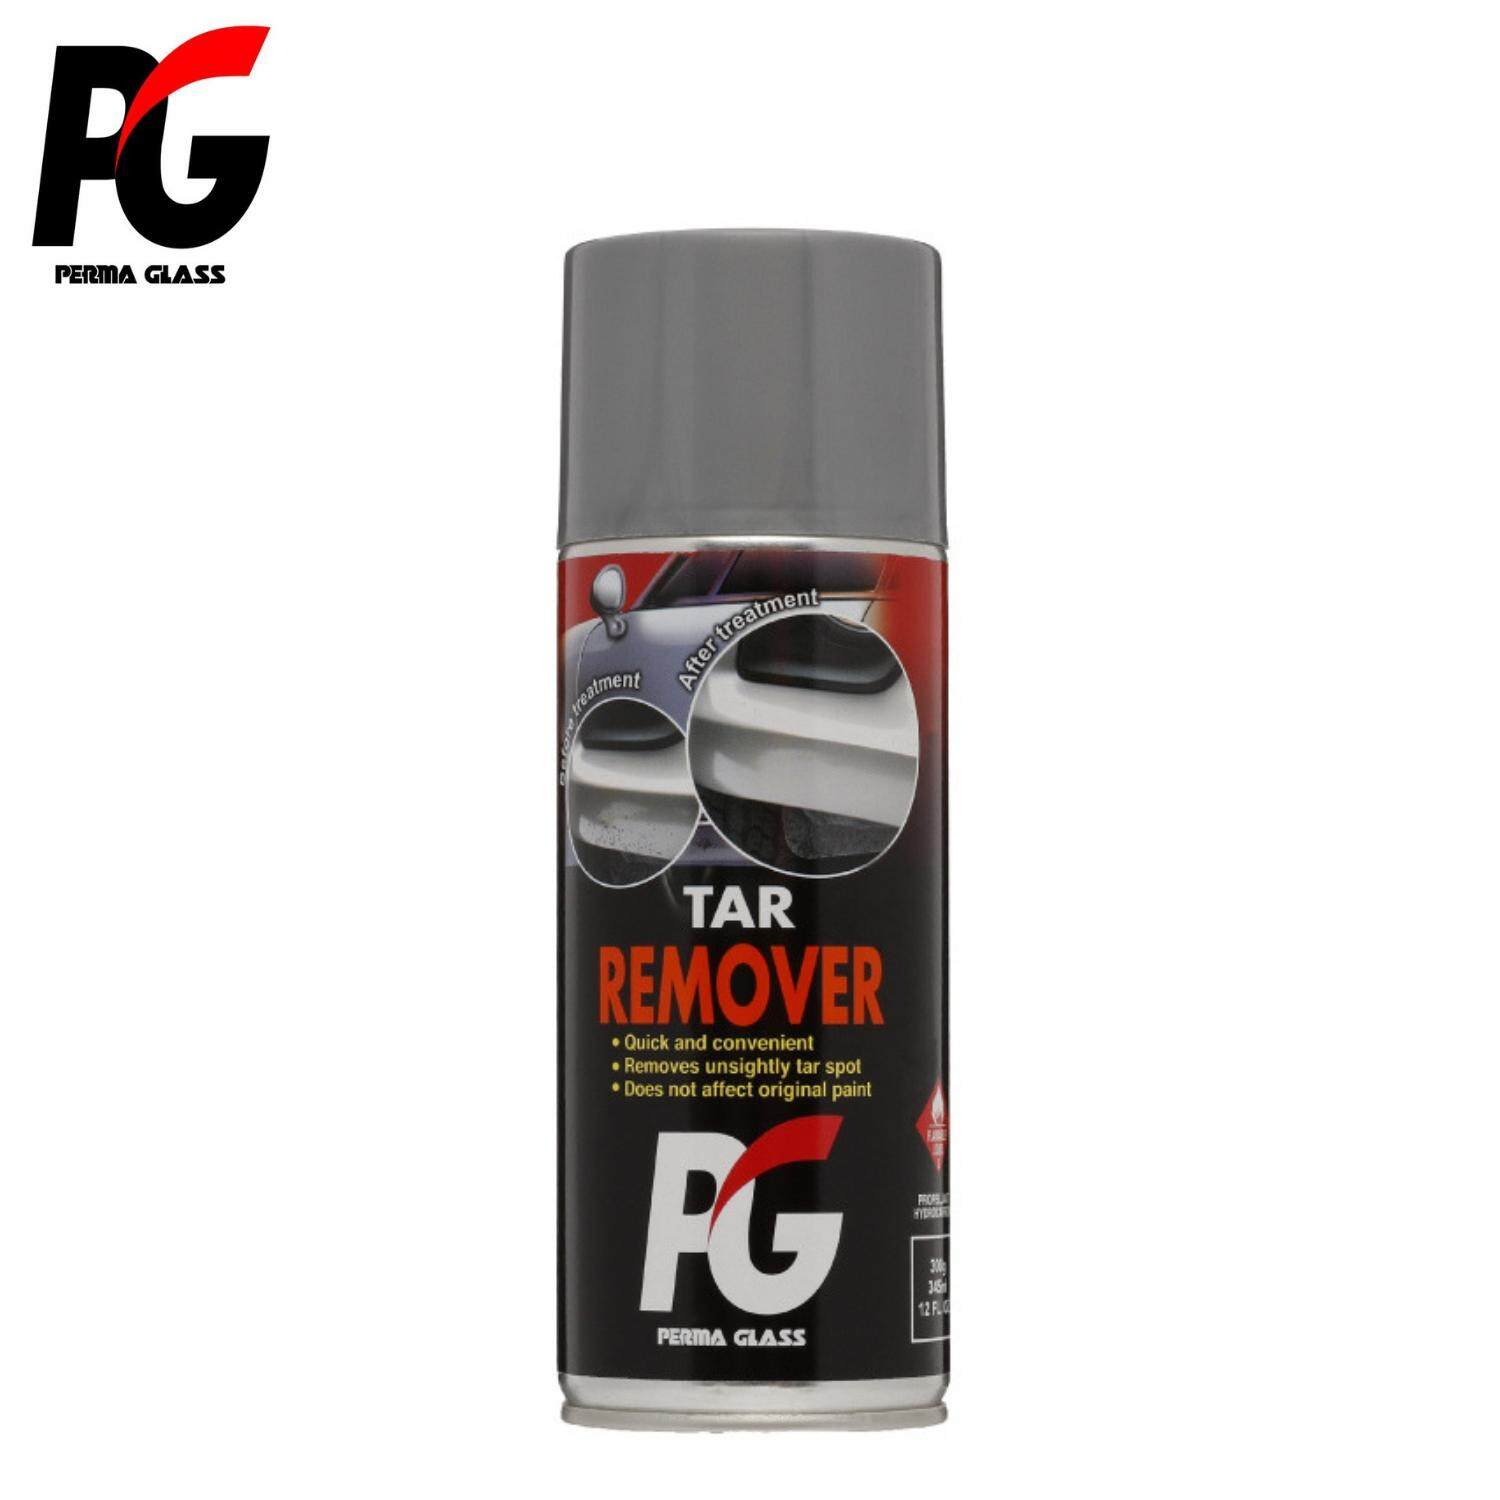 PG TAR REMOVER CLEANER (300GM) - CAR CARE EXTERIOR